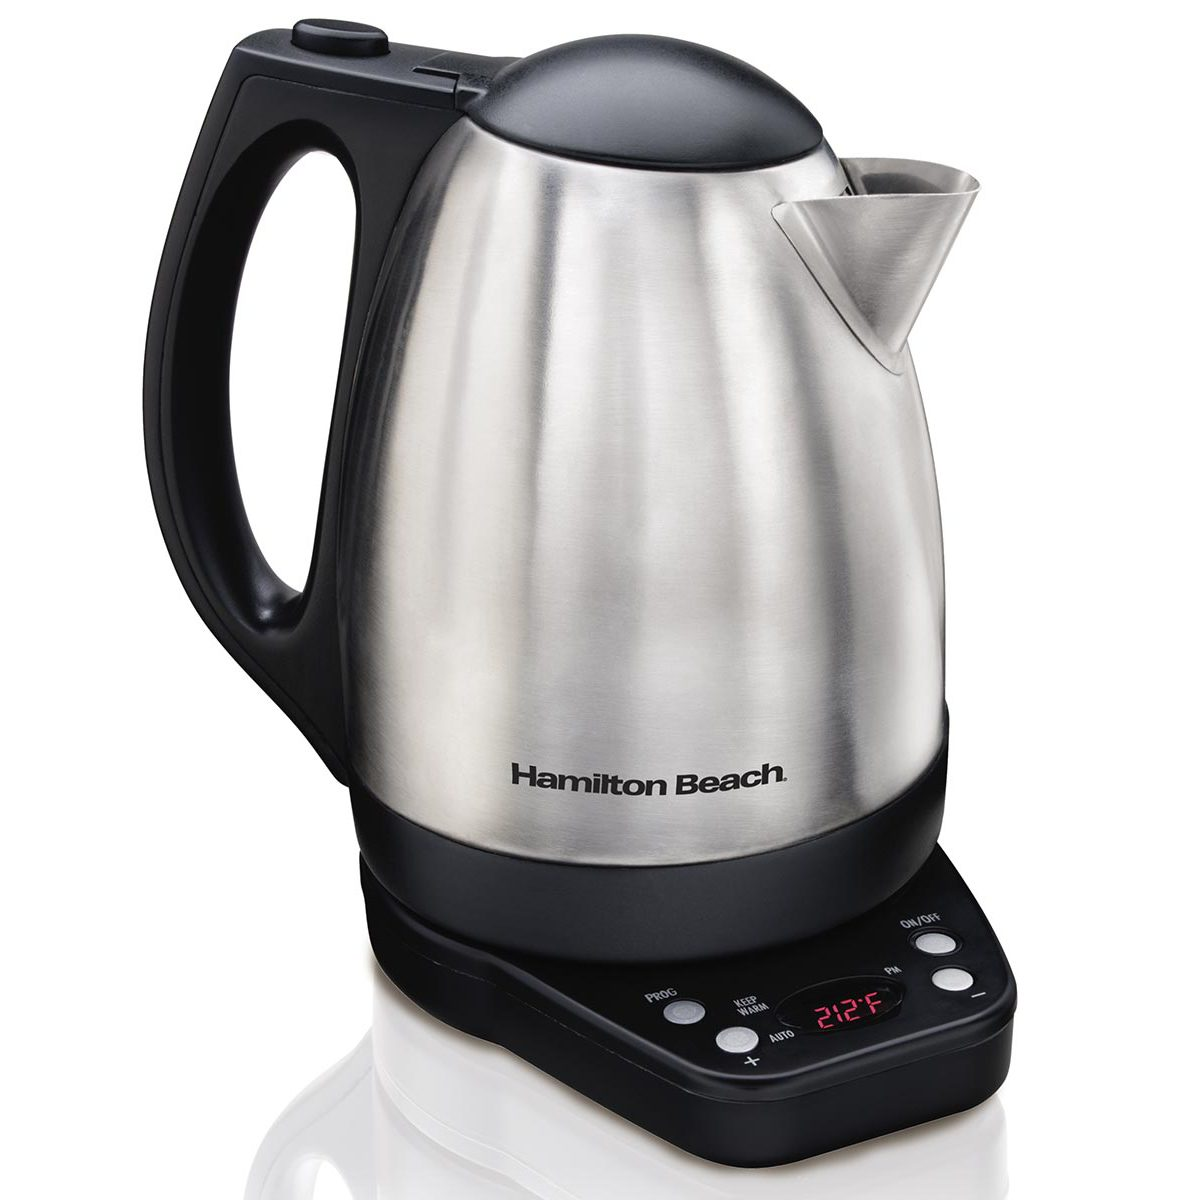 Programmable 1 7 Liter Kettle 40996z also Low Carb Crock Pot Recipes moreover Hamilton Beach Professional 1800 Watt Peak Power Blender With Programs 58850 together with Chomeycakes blogspot in addition Borosil Brass Puja Thali 2. on induction cooker recipes